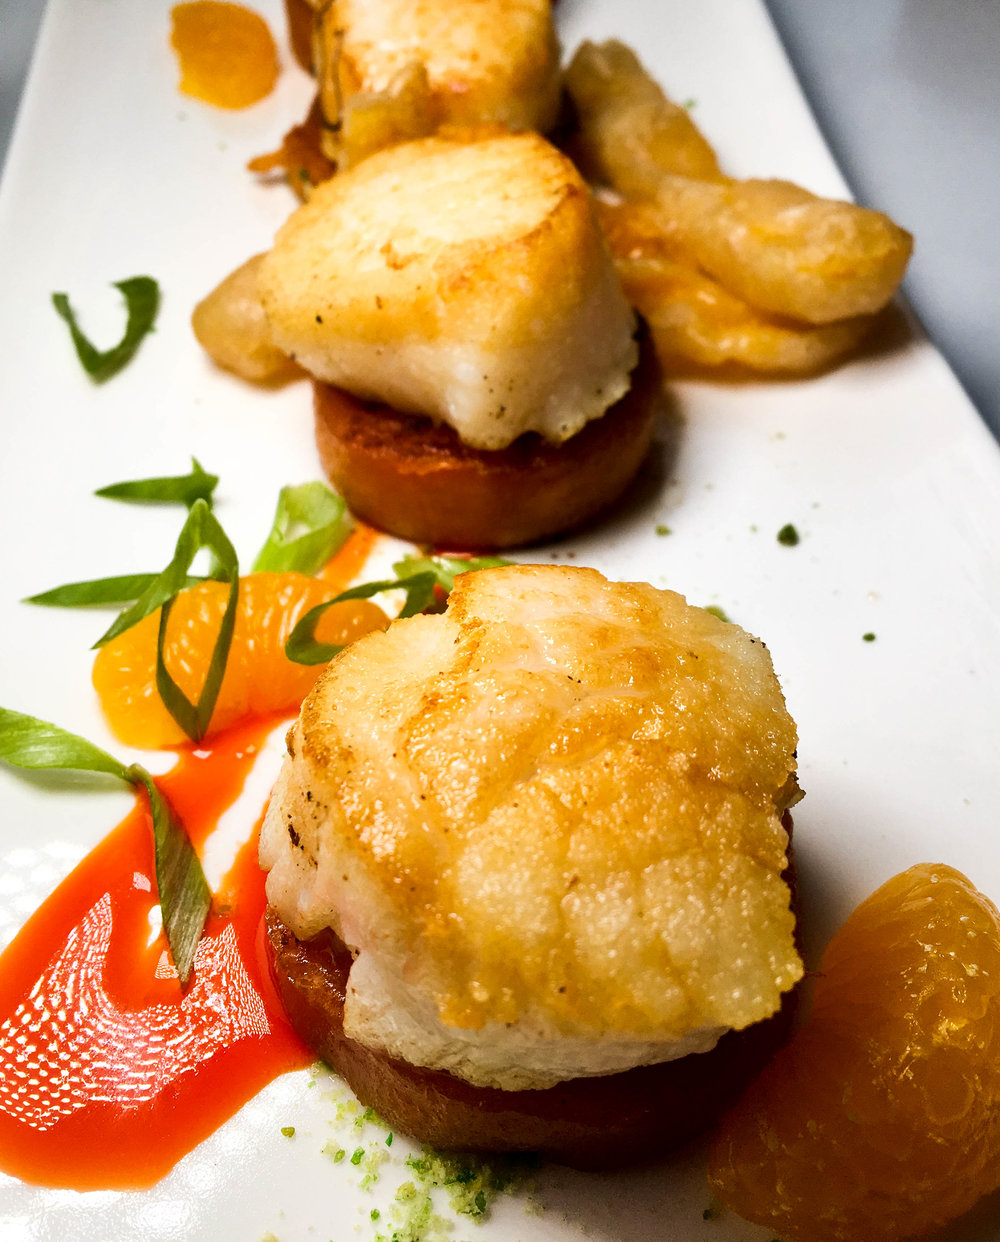 Pan seared scallops with wasabi pea dust, sweet potato fondant, mandarin oranges, and tempura fried mango in a blood orange coulis.